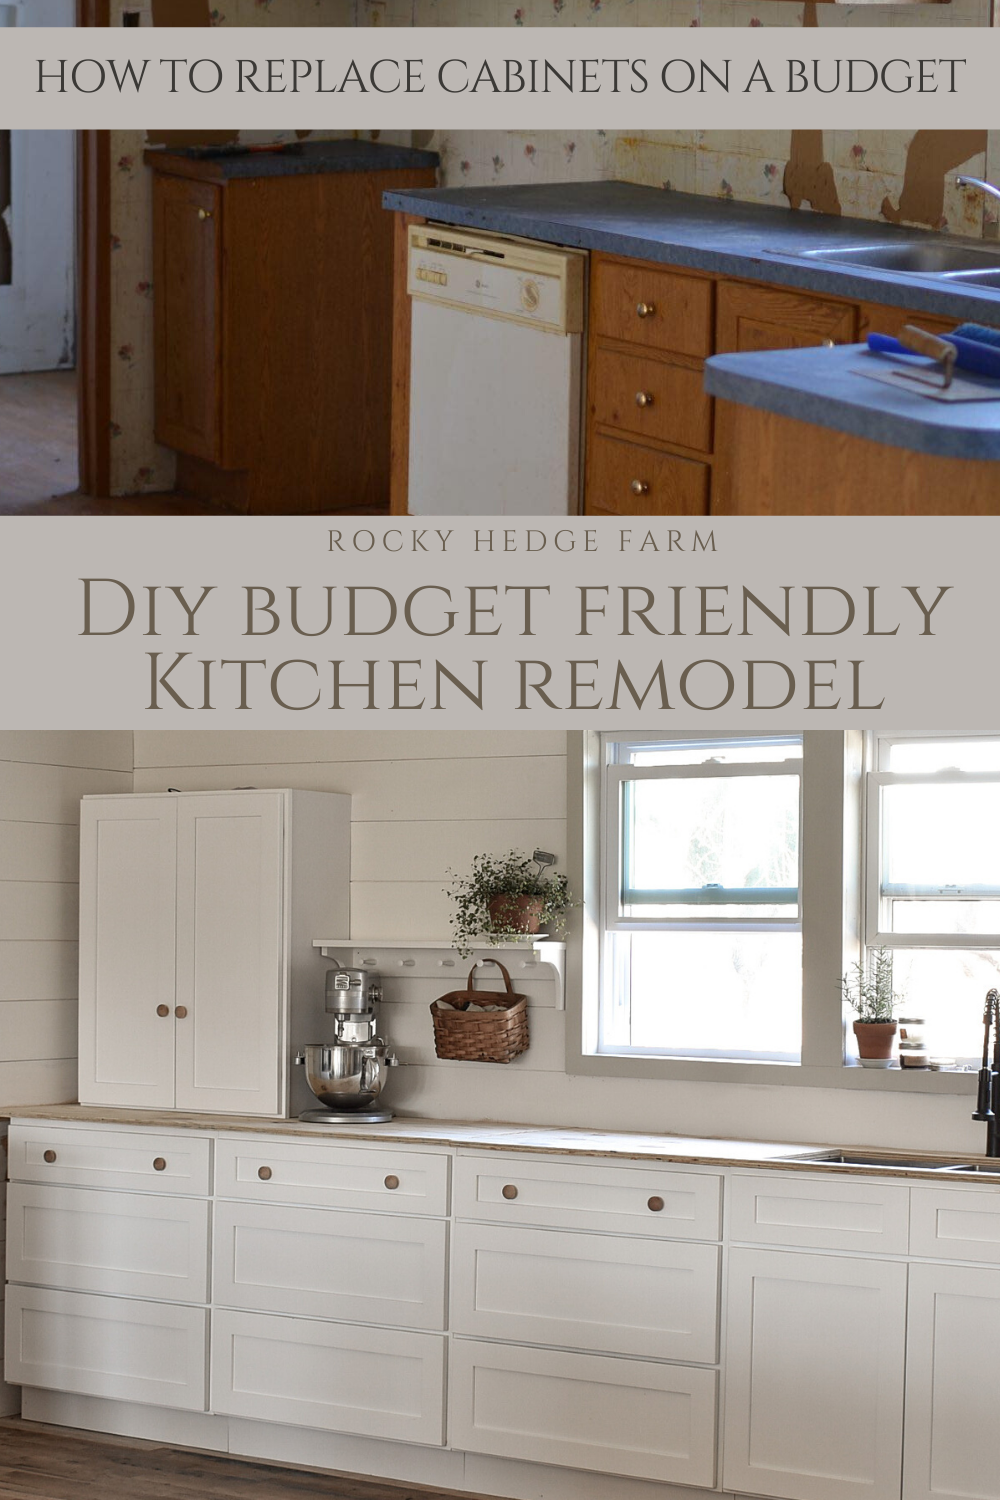 Mobile Home Kitchen Cabinet Remodel In 2020 Budget Kitchen Remodel Budget Friendly Kitchen Remodel Kitchen Cabinet Remodel